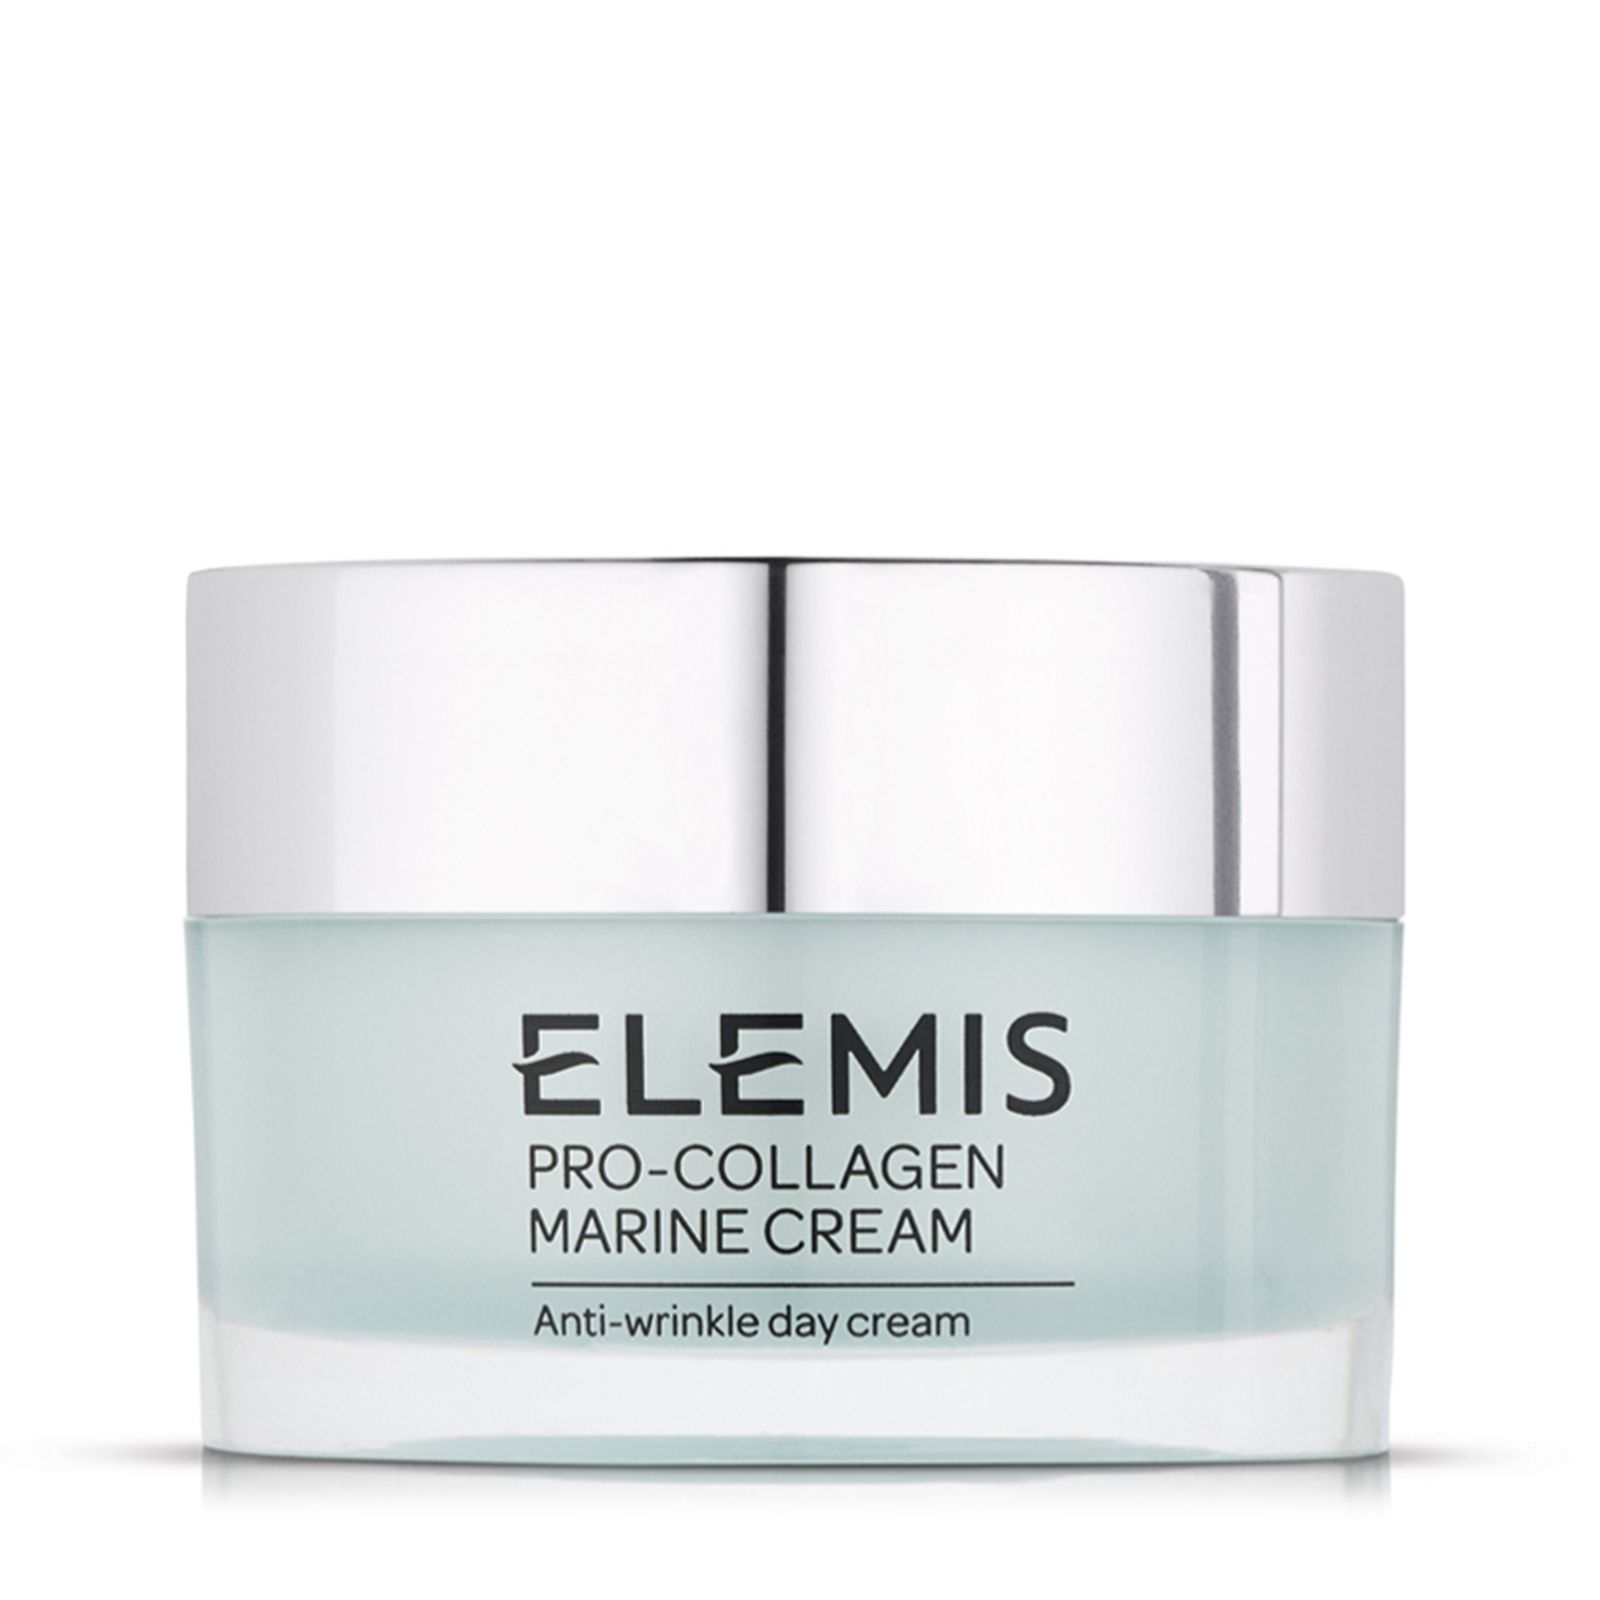 elemis pro collagen marine cream uk